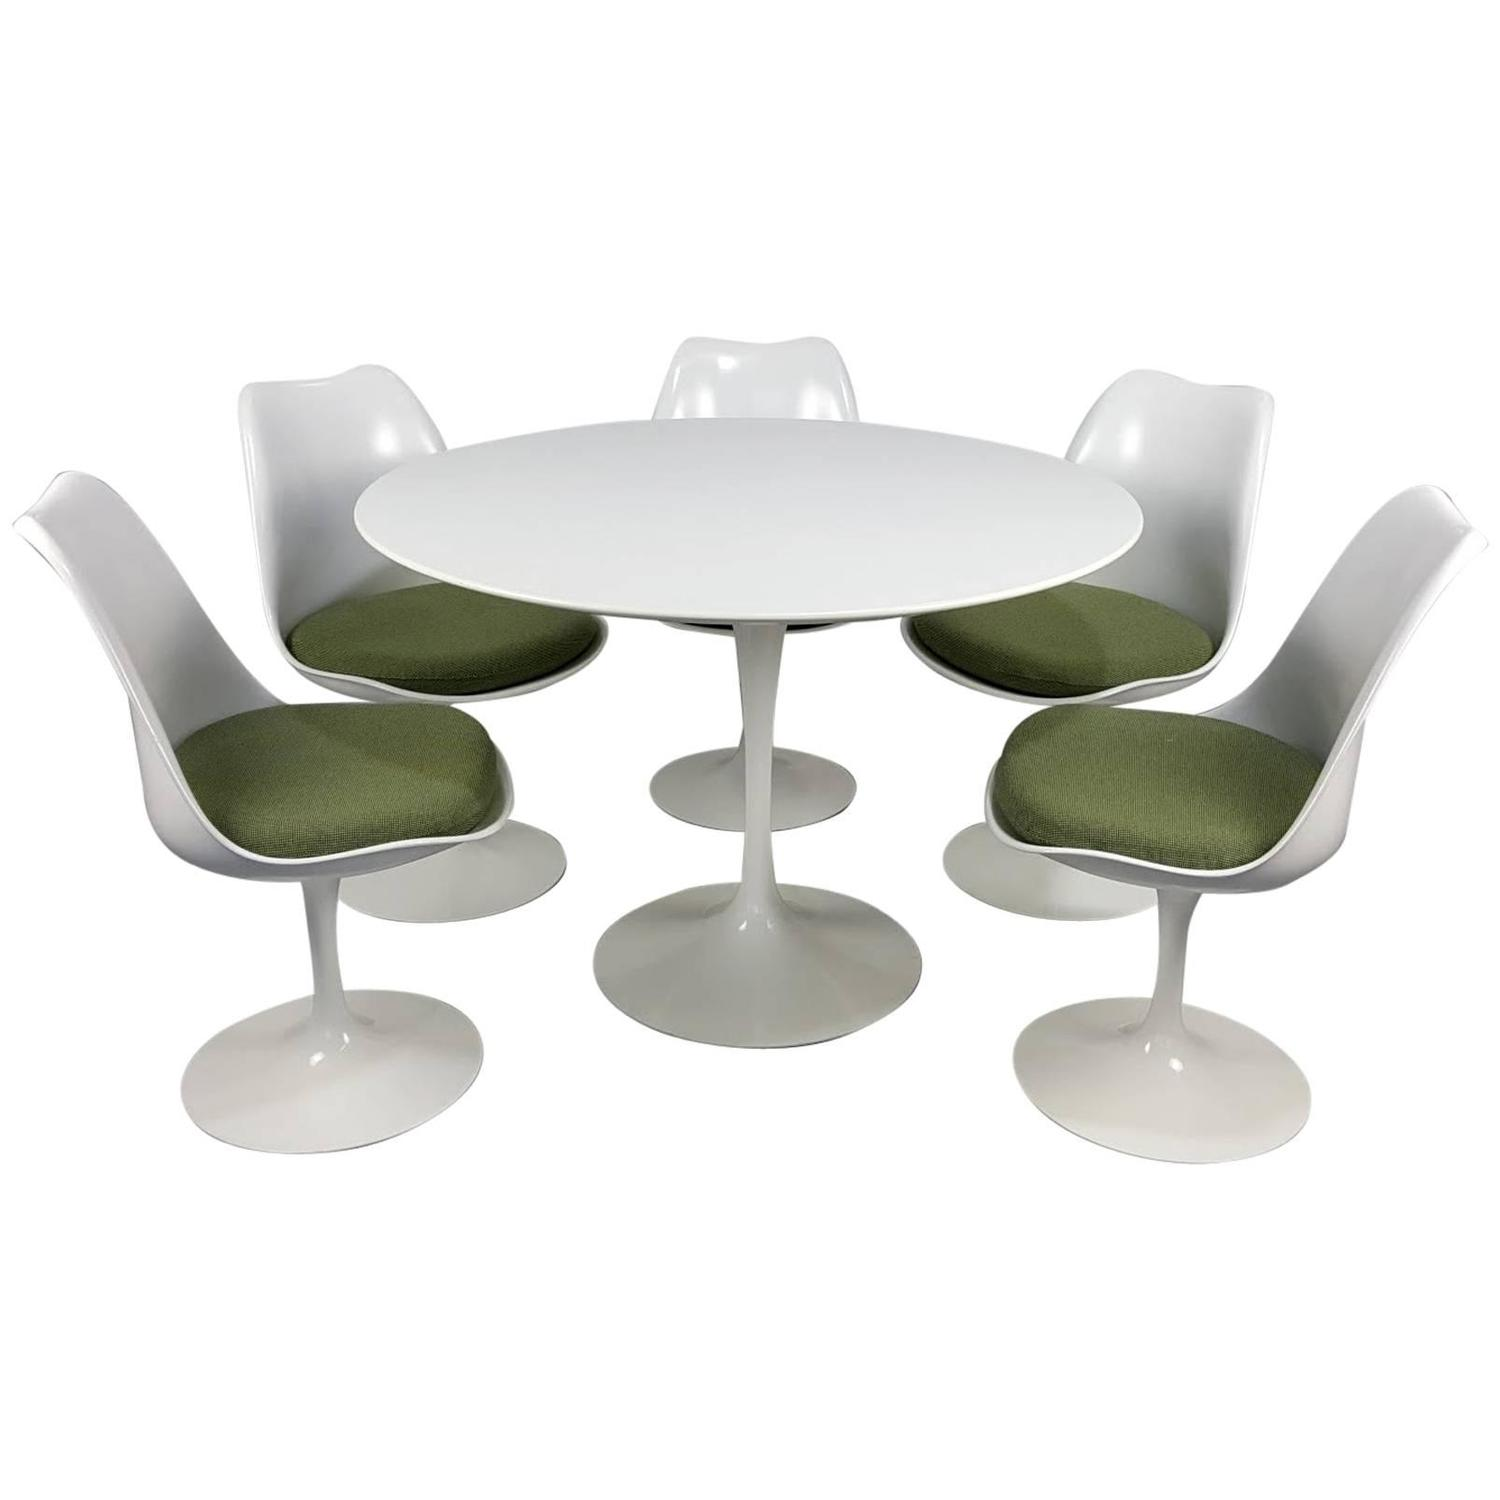 Remarkable Eero Saarinen Tulip Table And Chairs By Knoll Newer Uwap Interior Chair Design Uwaporg